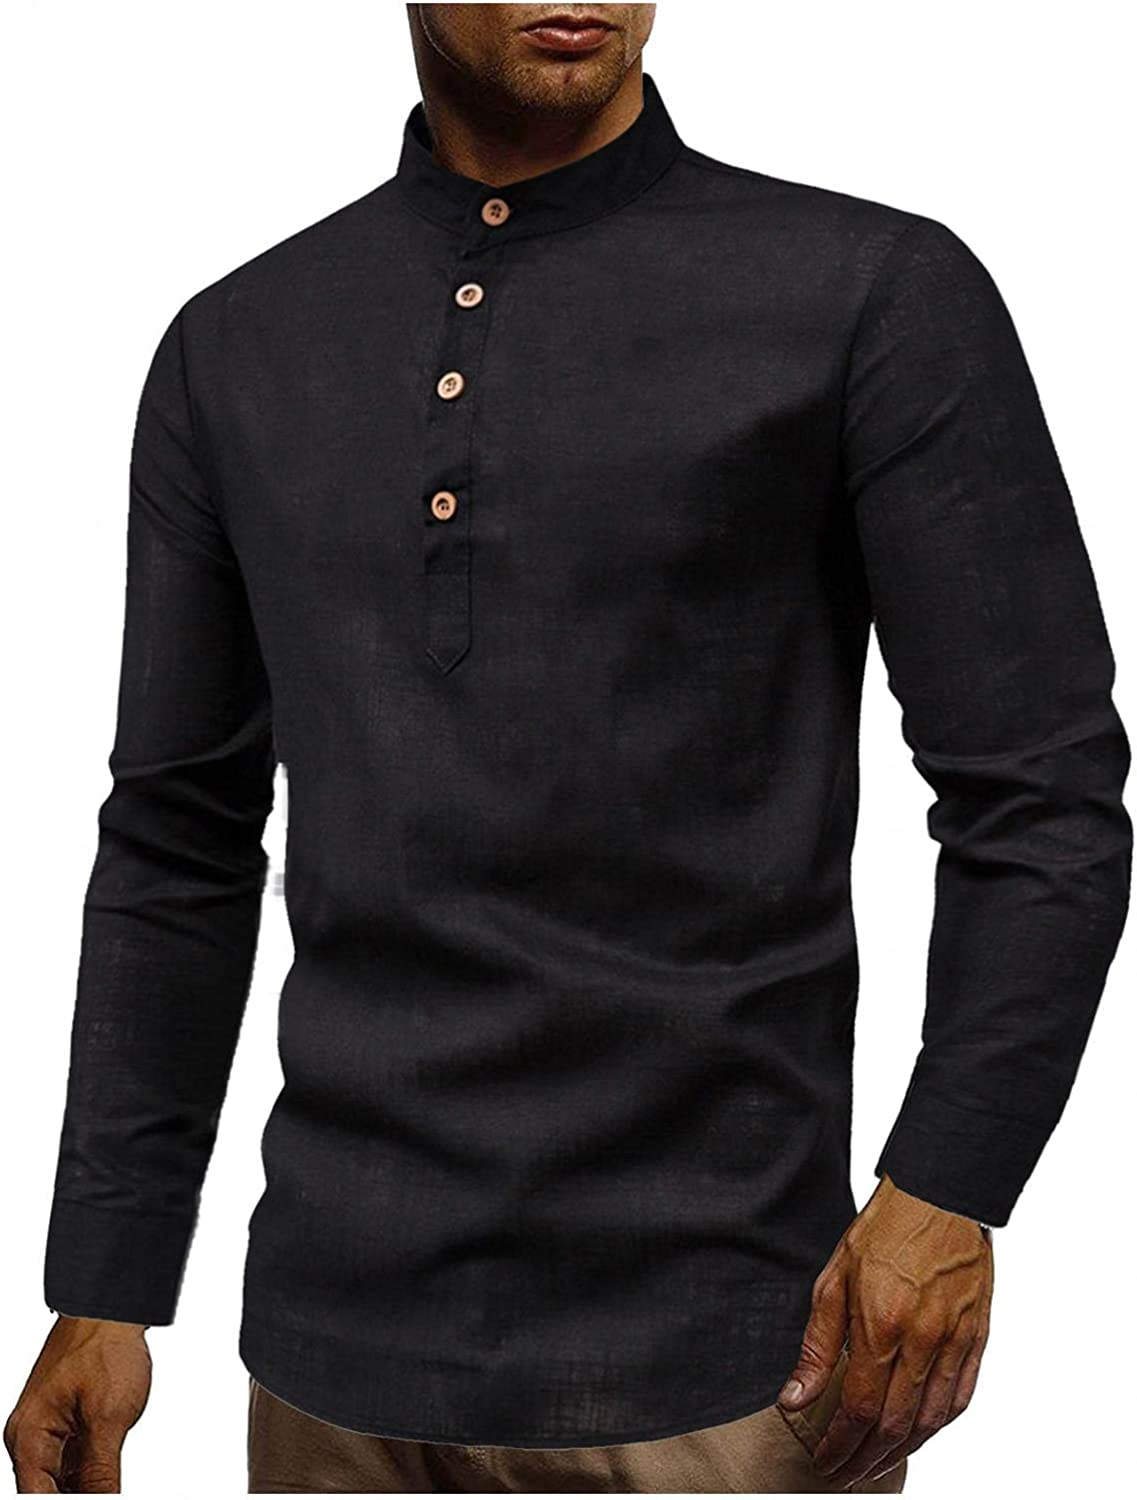 Mens Cotton Linen Henley Shirts Plus Size Long Sleeve Hippie Casual Beach T Shirts Fashion Yoga Loose Fit Henley Tops